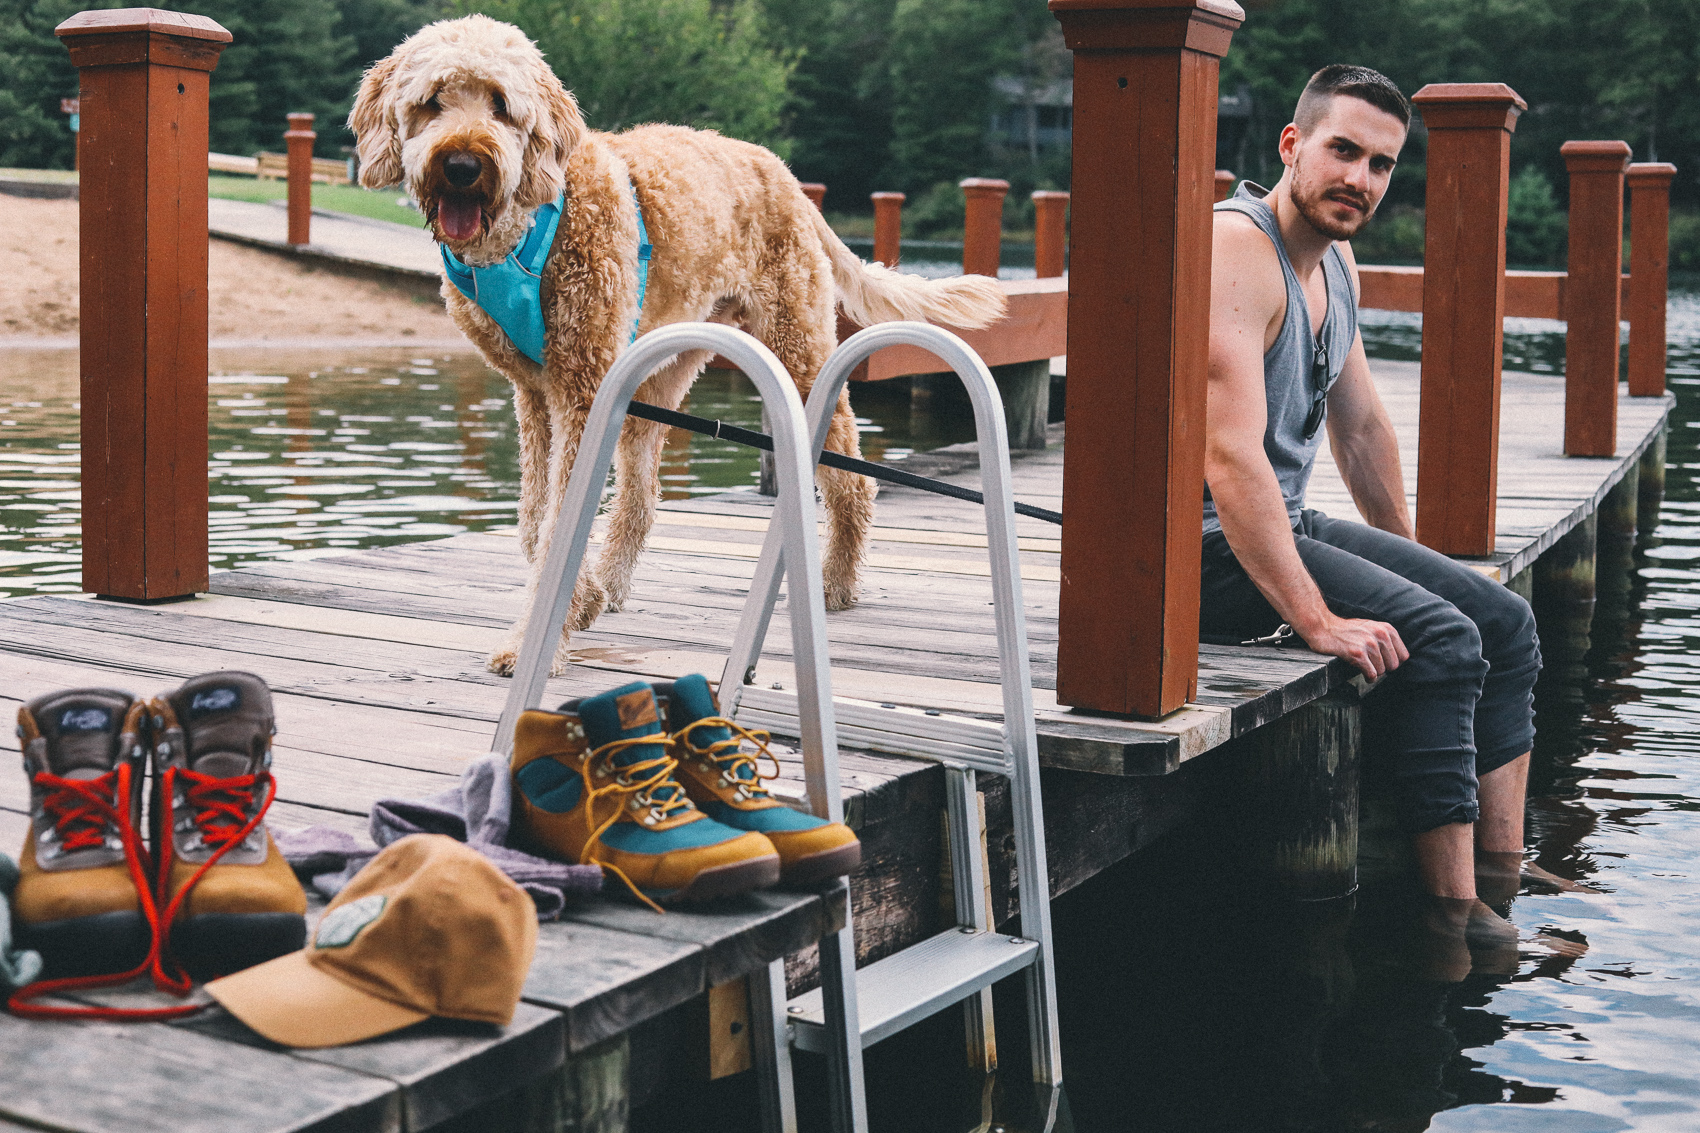 couples hiking, dogs, ruffwear, lake, mountain trip, hike, camp, fishing, Patagonia, back country, hiking boots